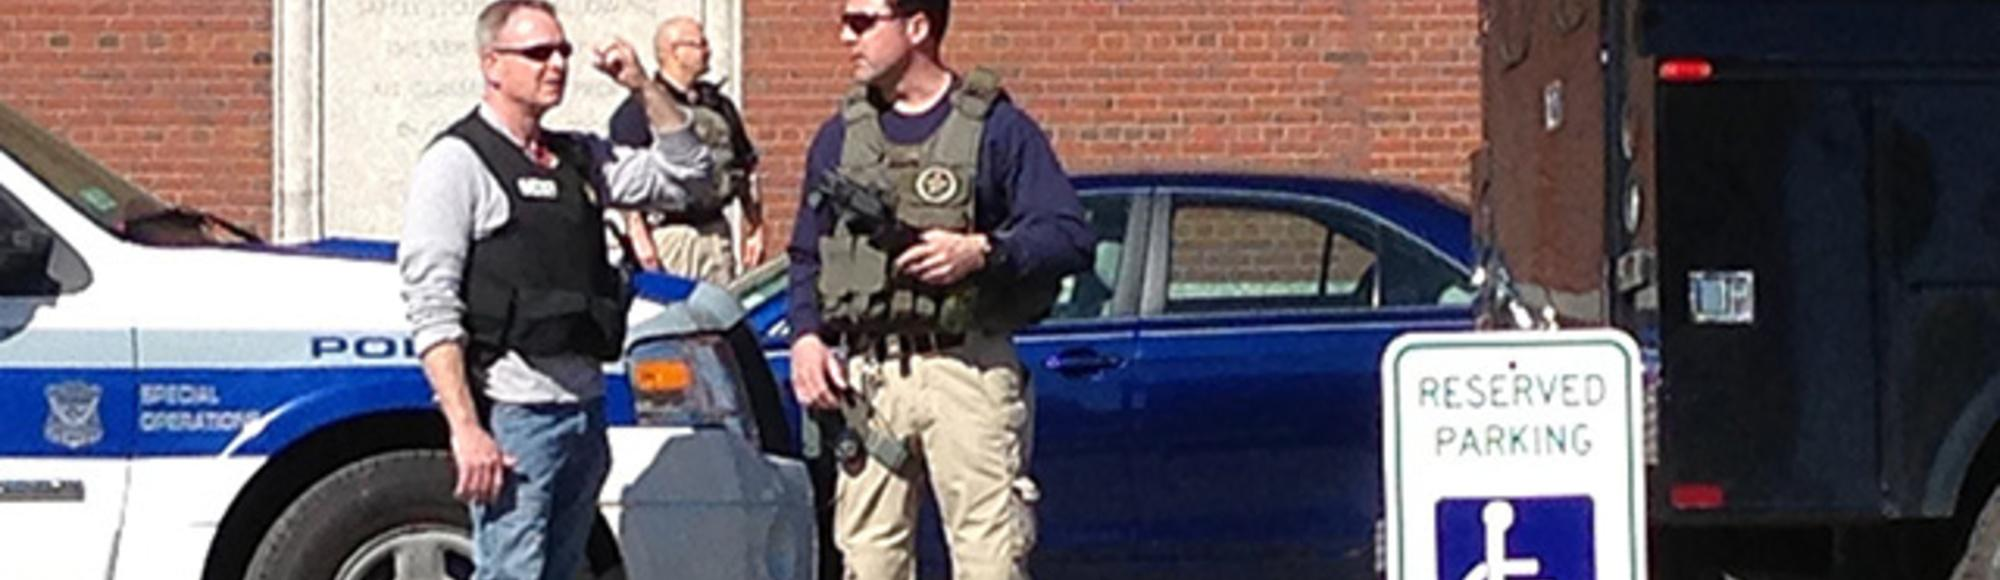 Bomb Threats and Bagpipes on a Day of False Reports in Boston